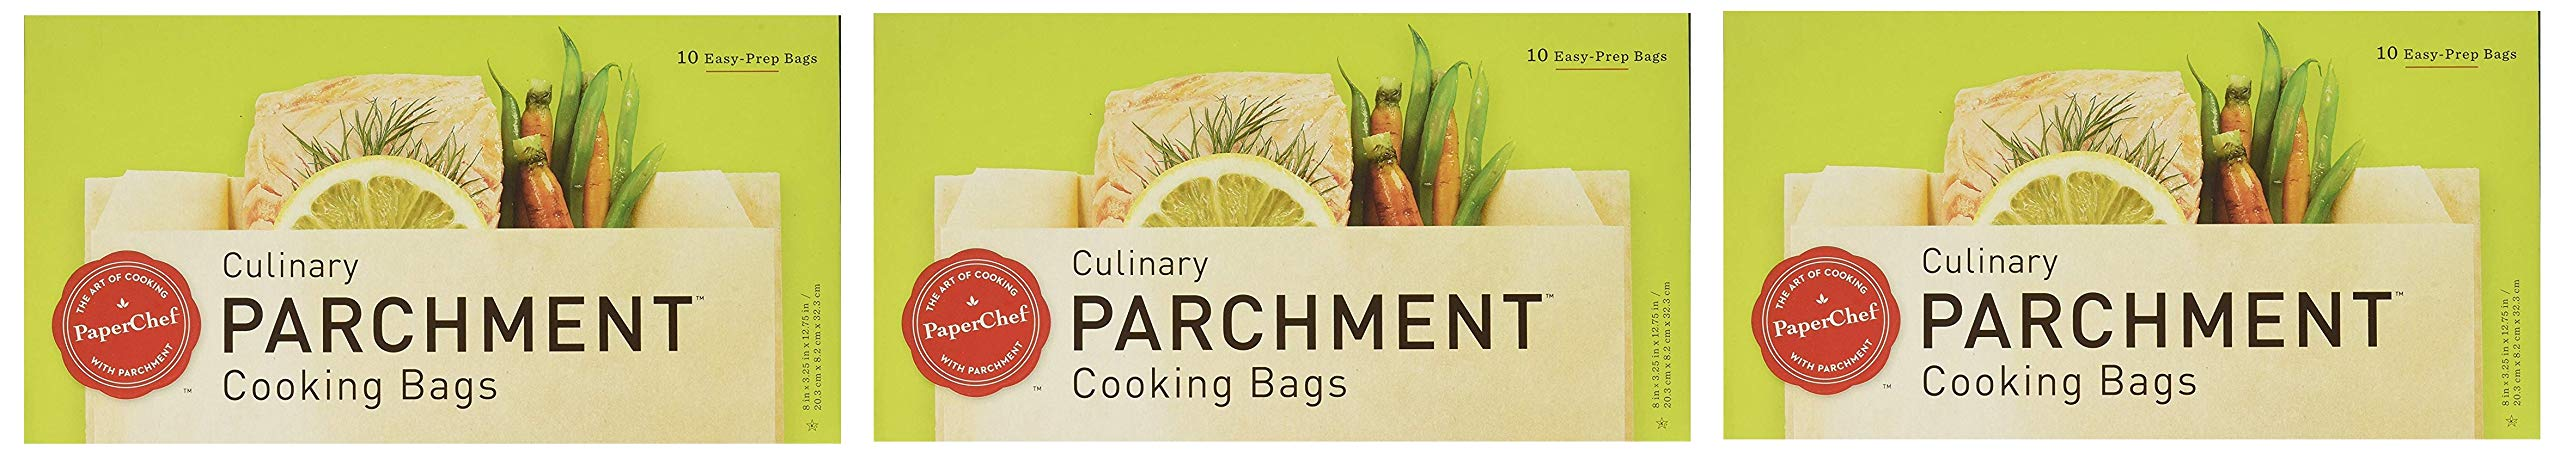 PaperChef Parchment Cooking Bags, 10 Count Box (Pack of 3) (Thrее Рack)